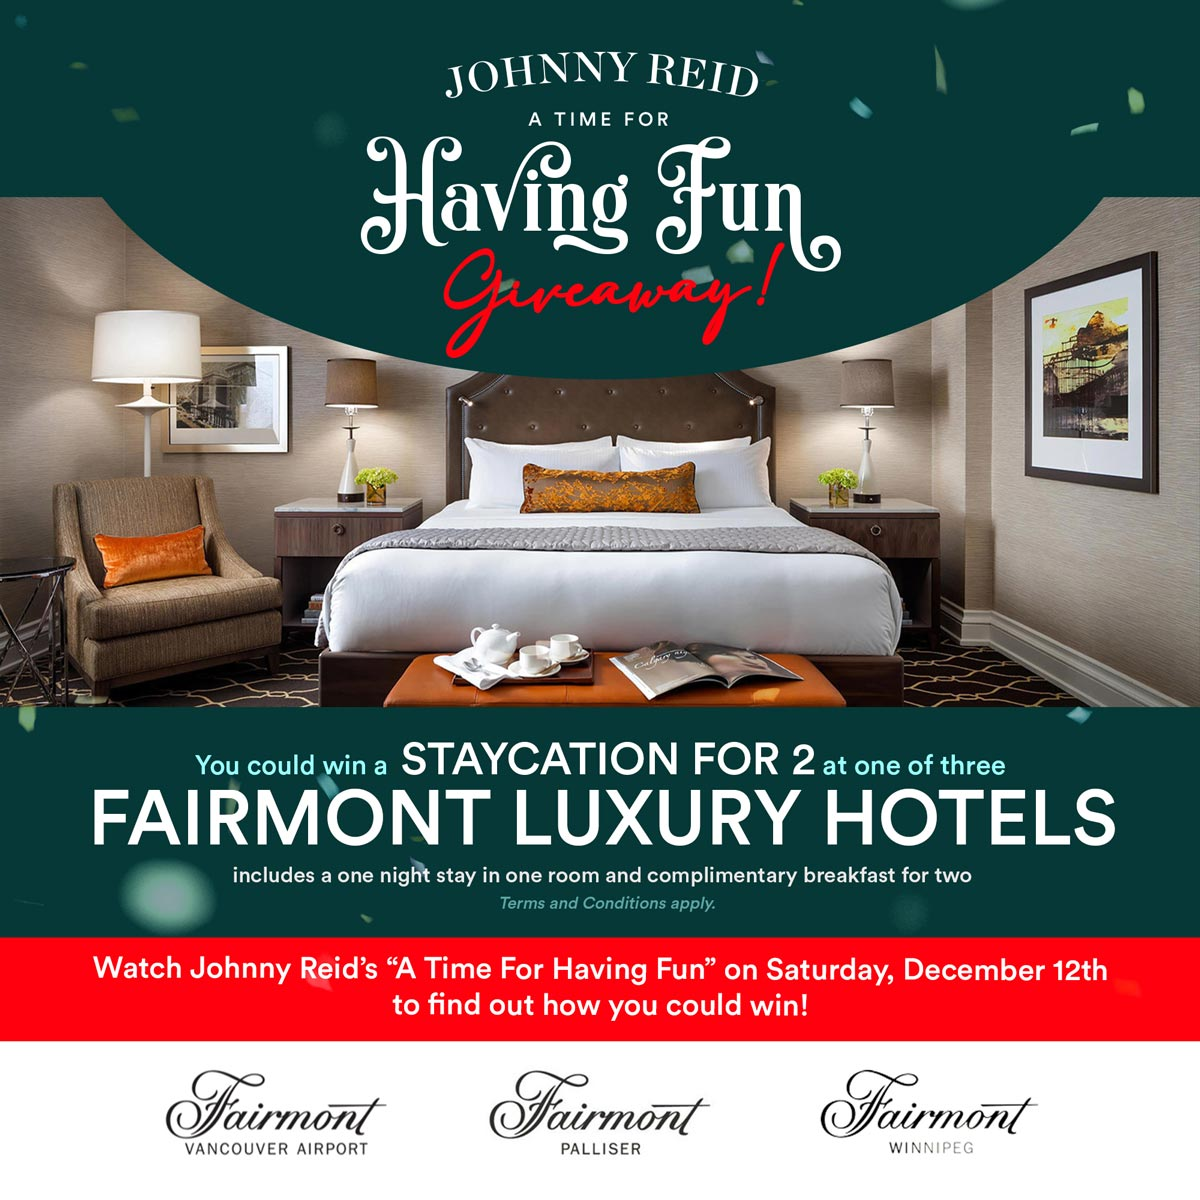 You could win a Staycation for 2 at one of three Fairmont Hotel locations